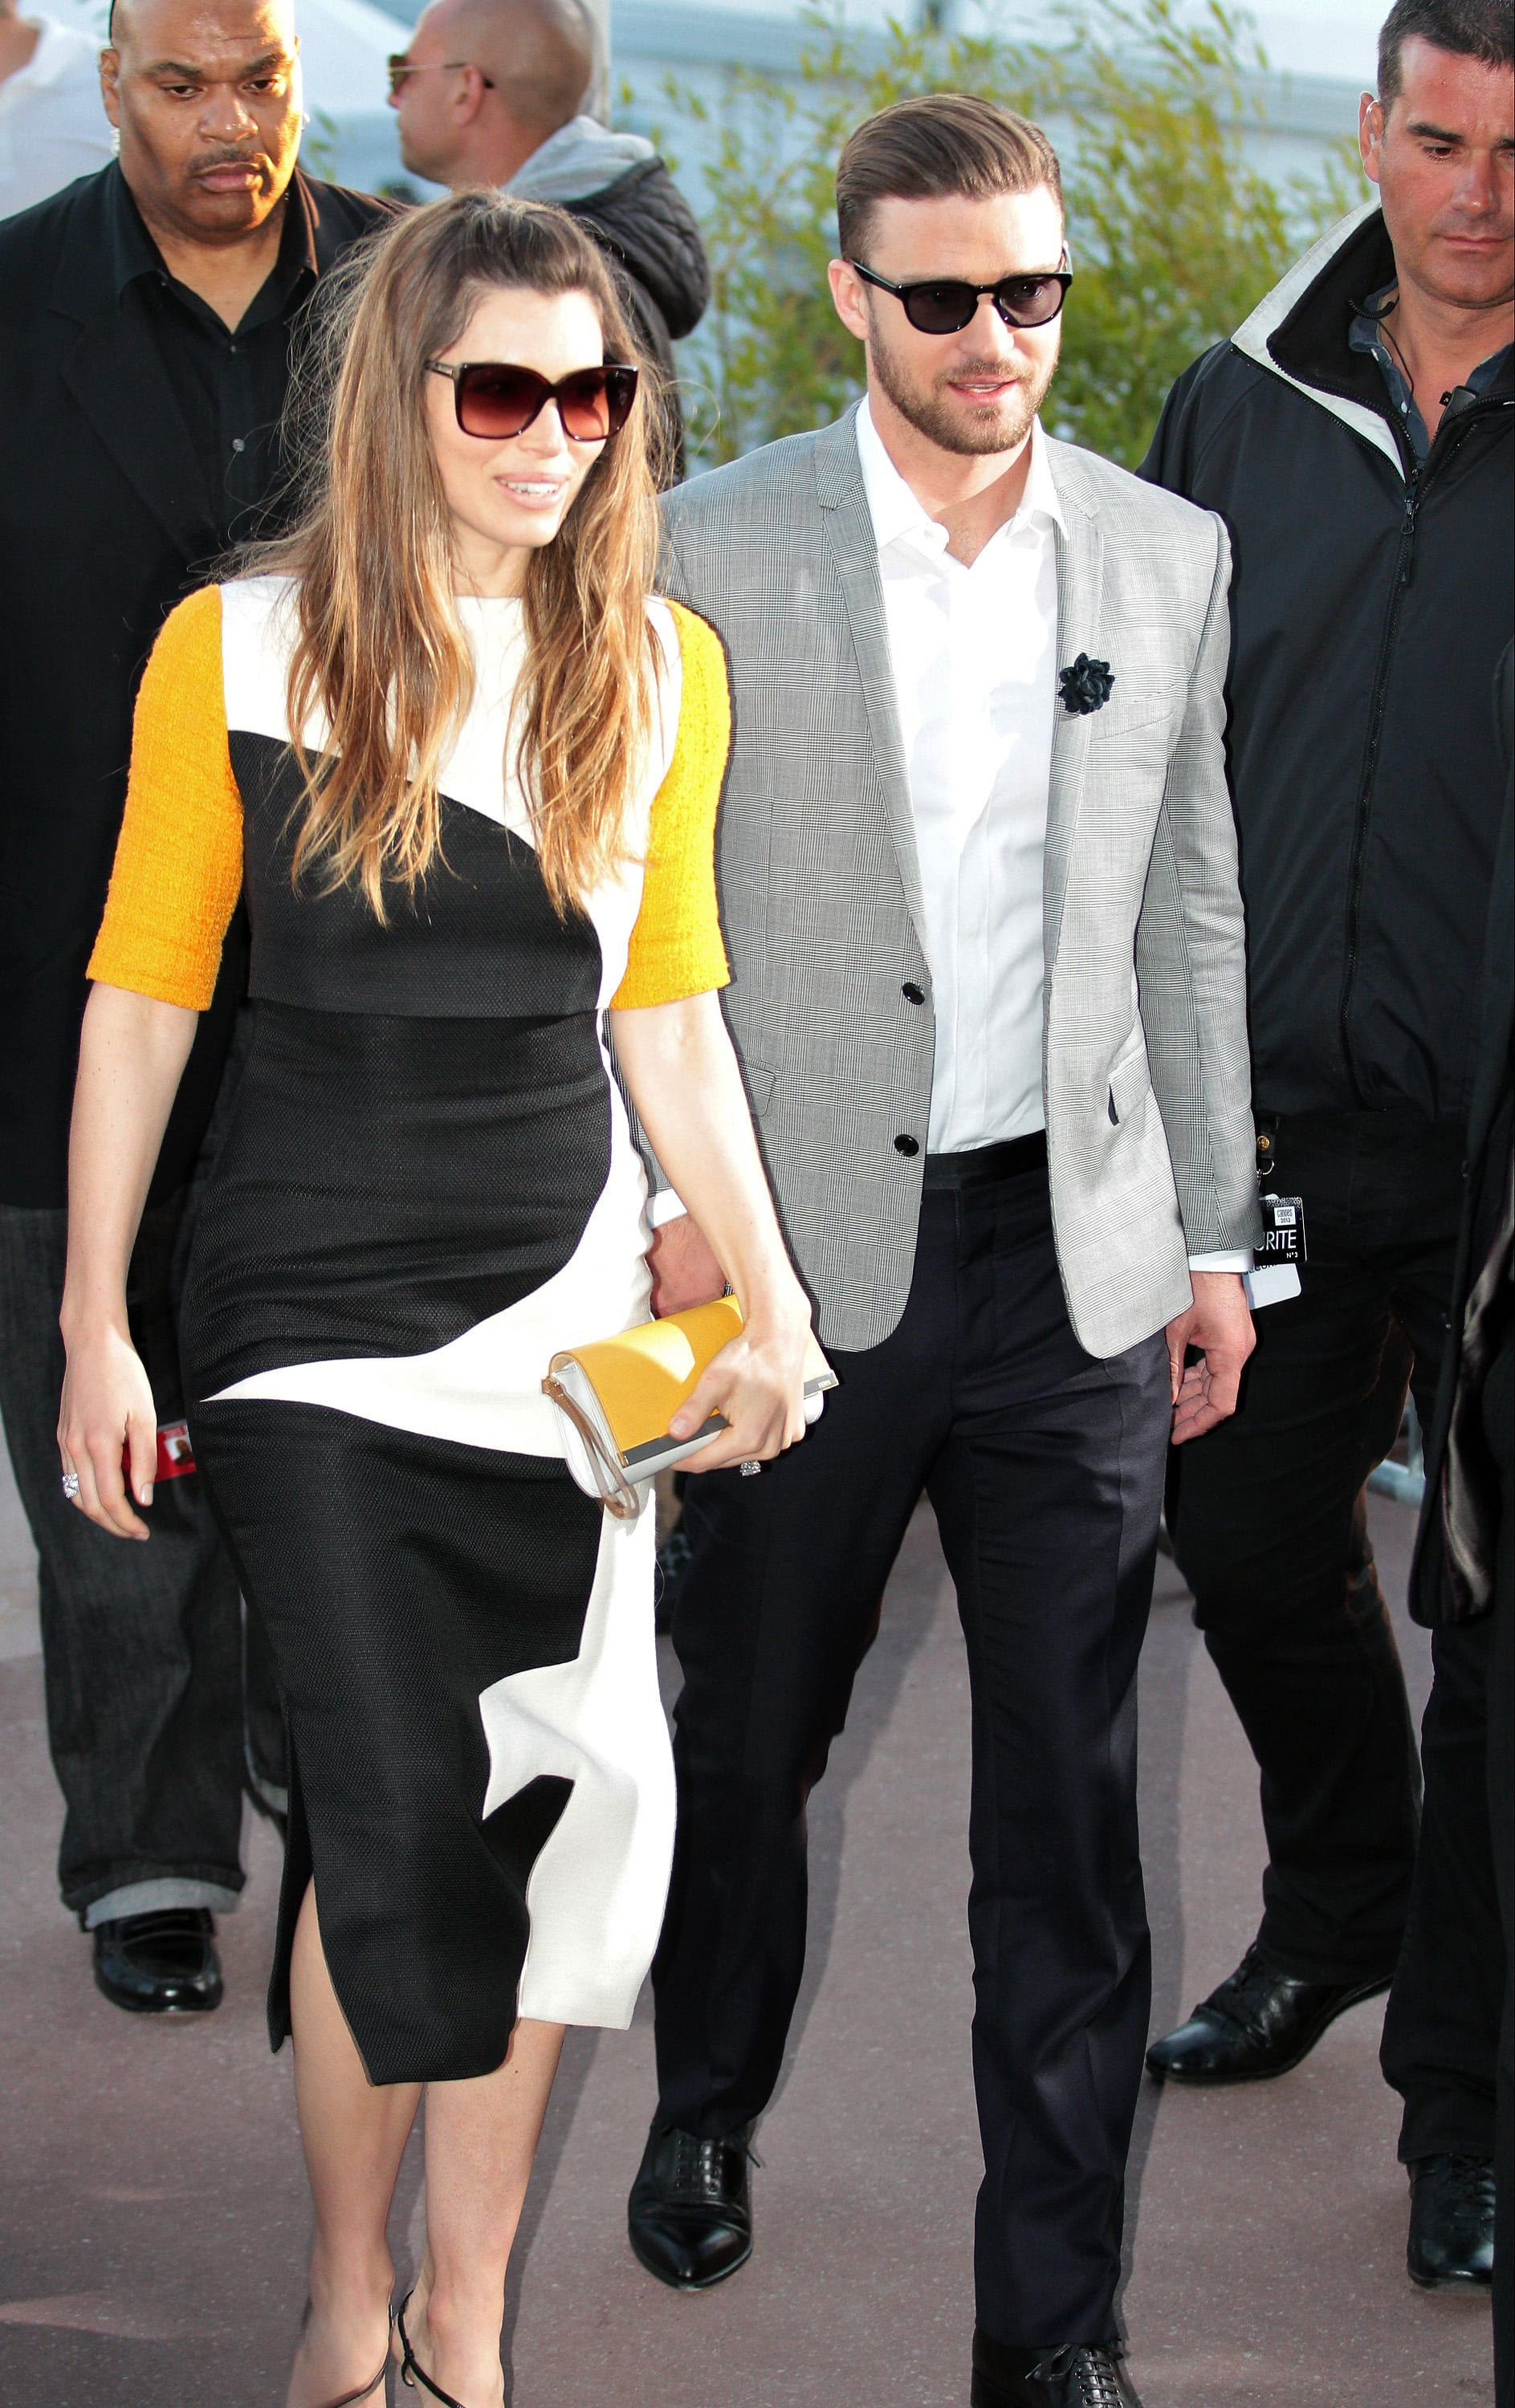 Jessica Biel and Justin Timberlake left the Le Grand Journal studio in Cannes on Monday.